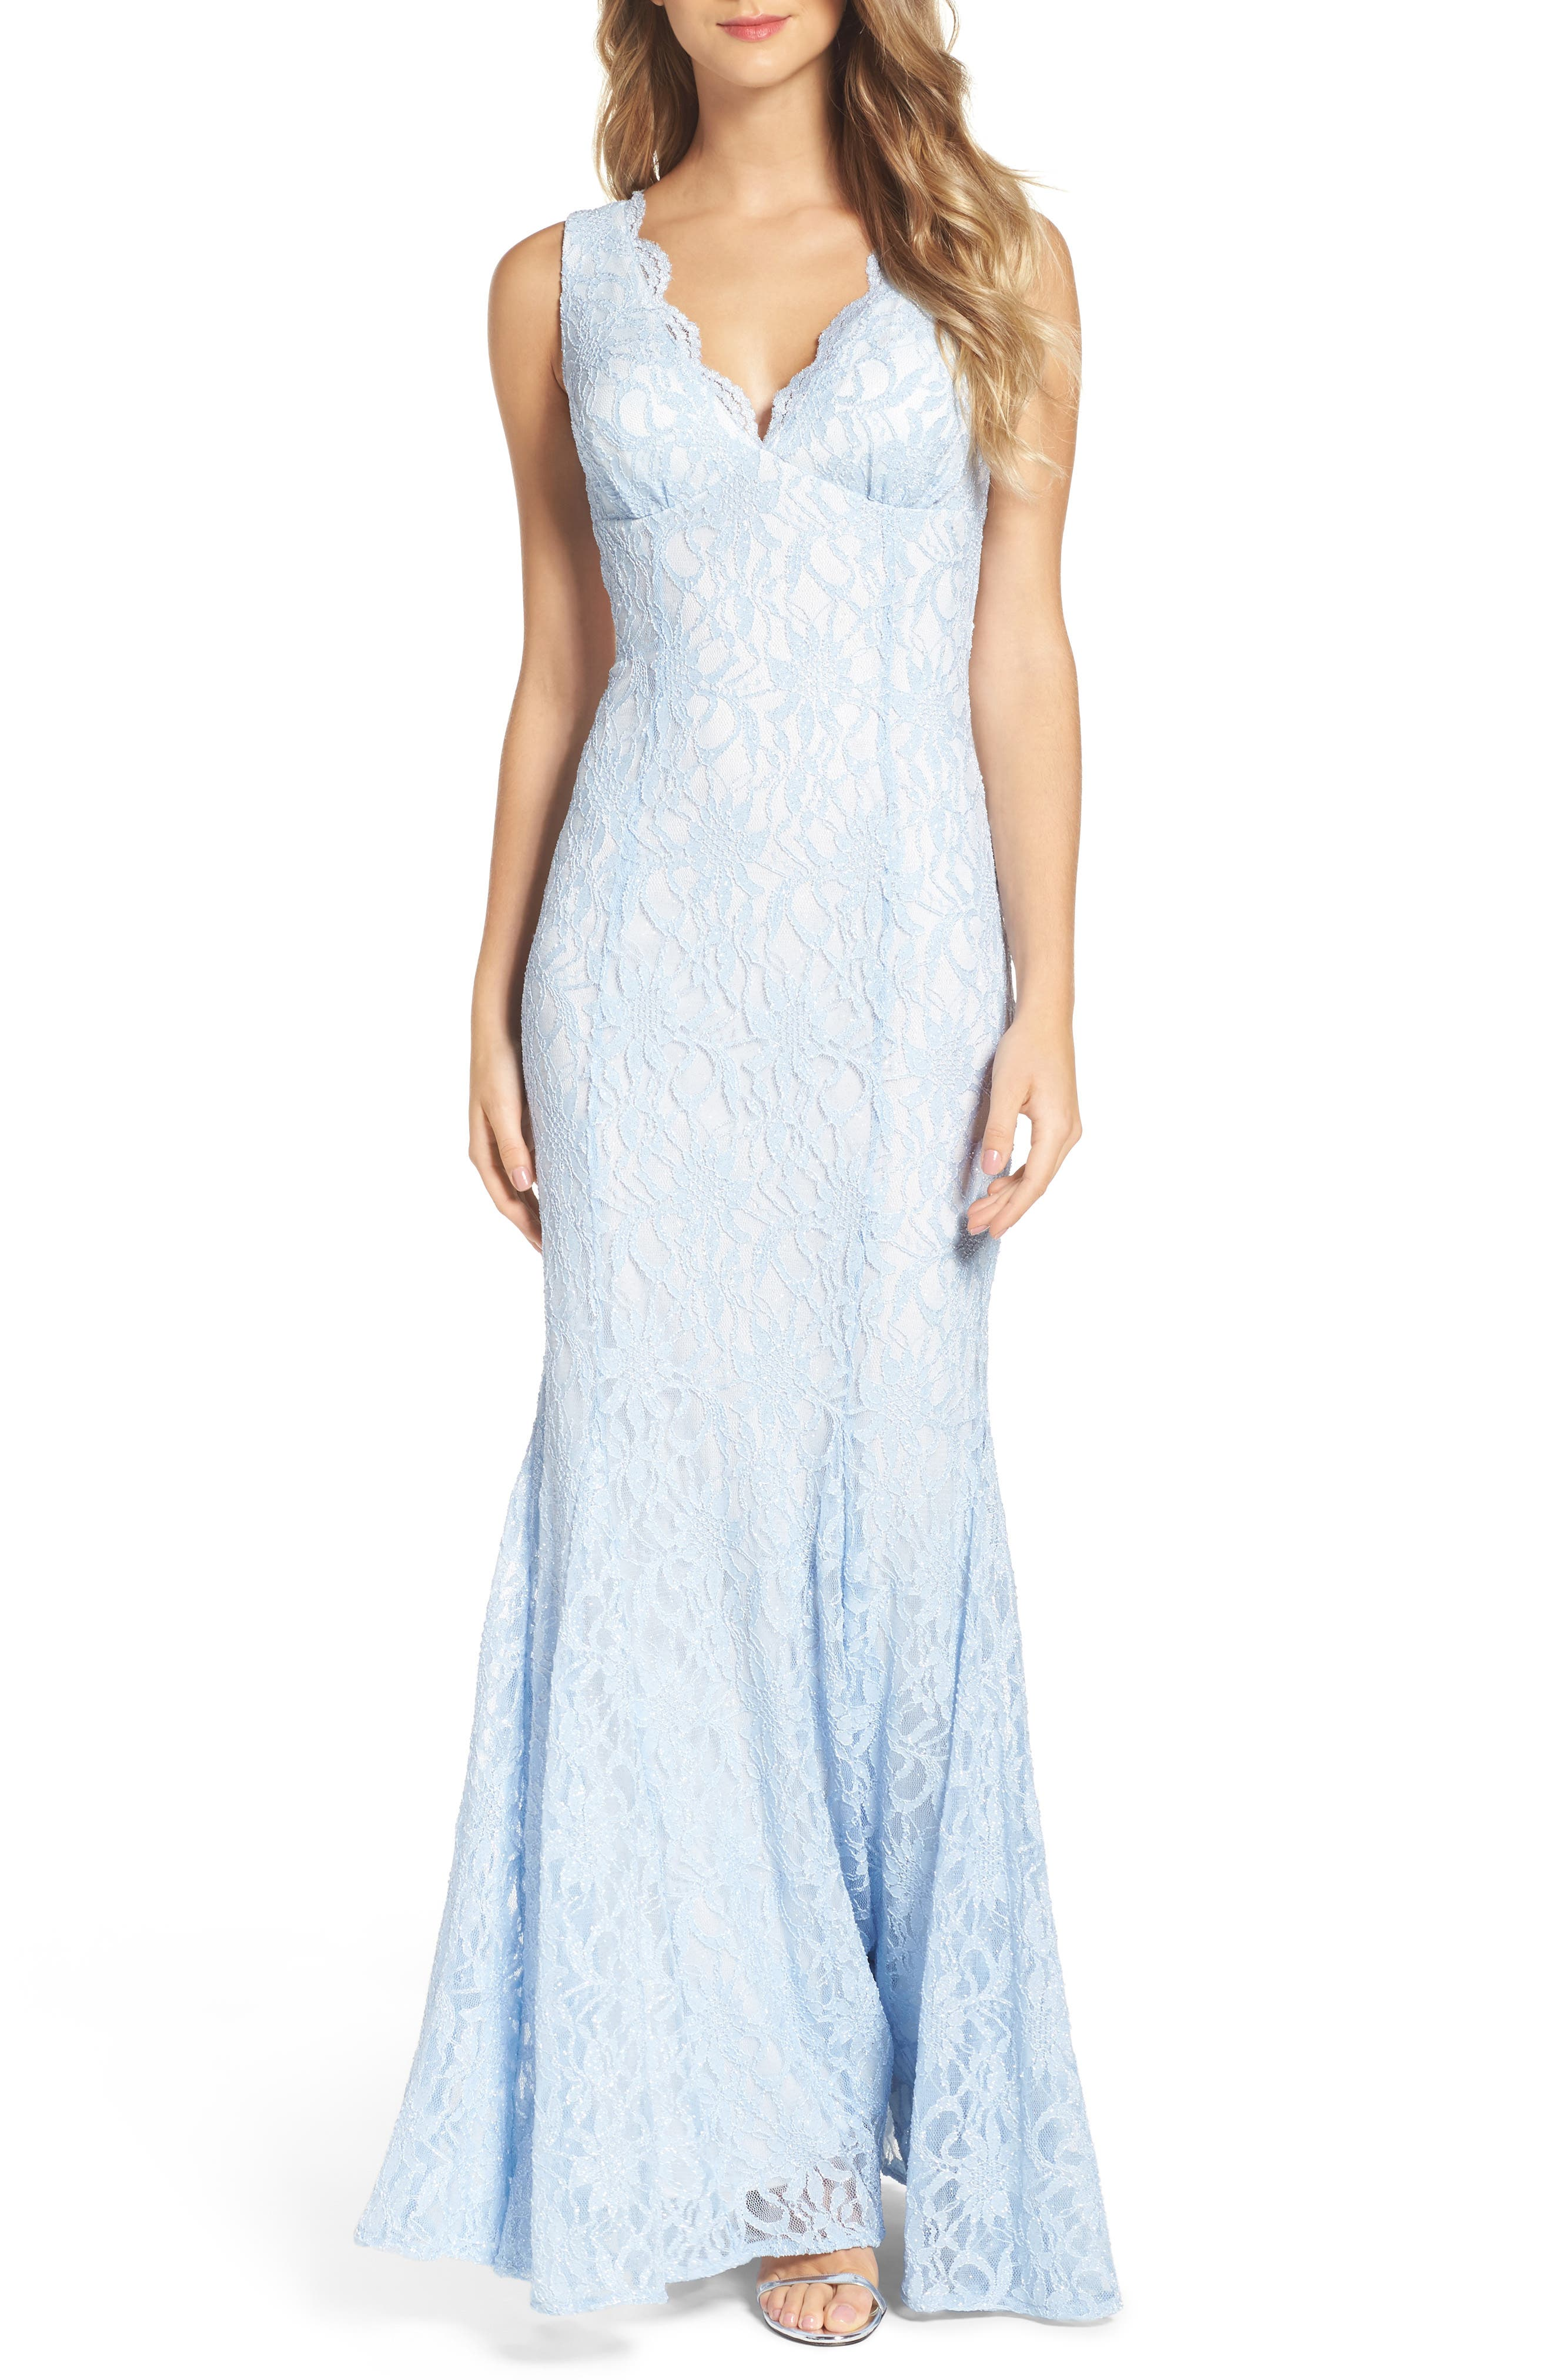 Glitter Lace Gown,                         Main,                         color, Ice Blue/ Ivory